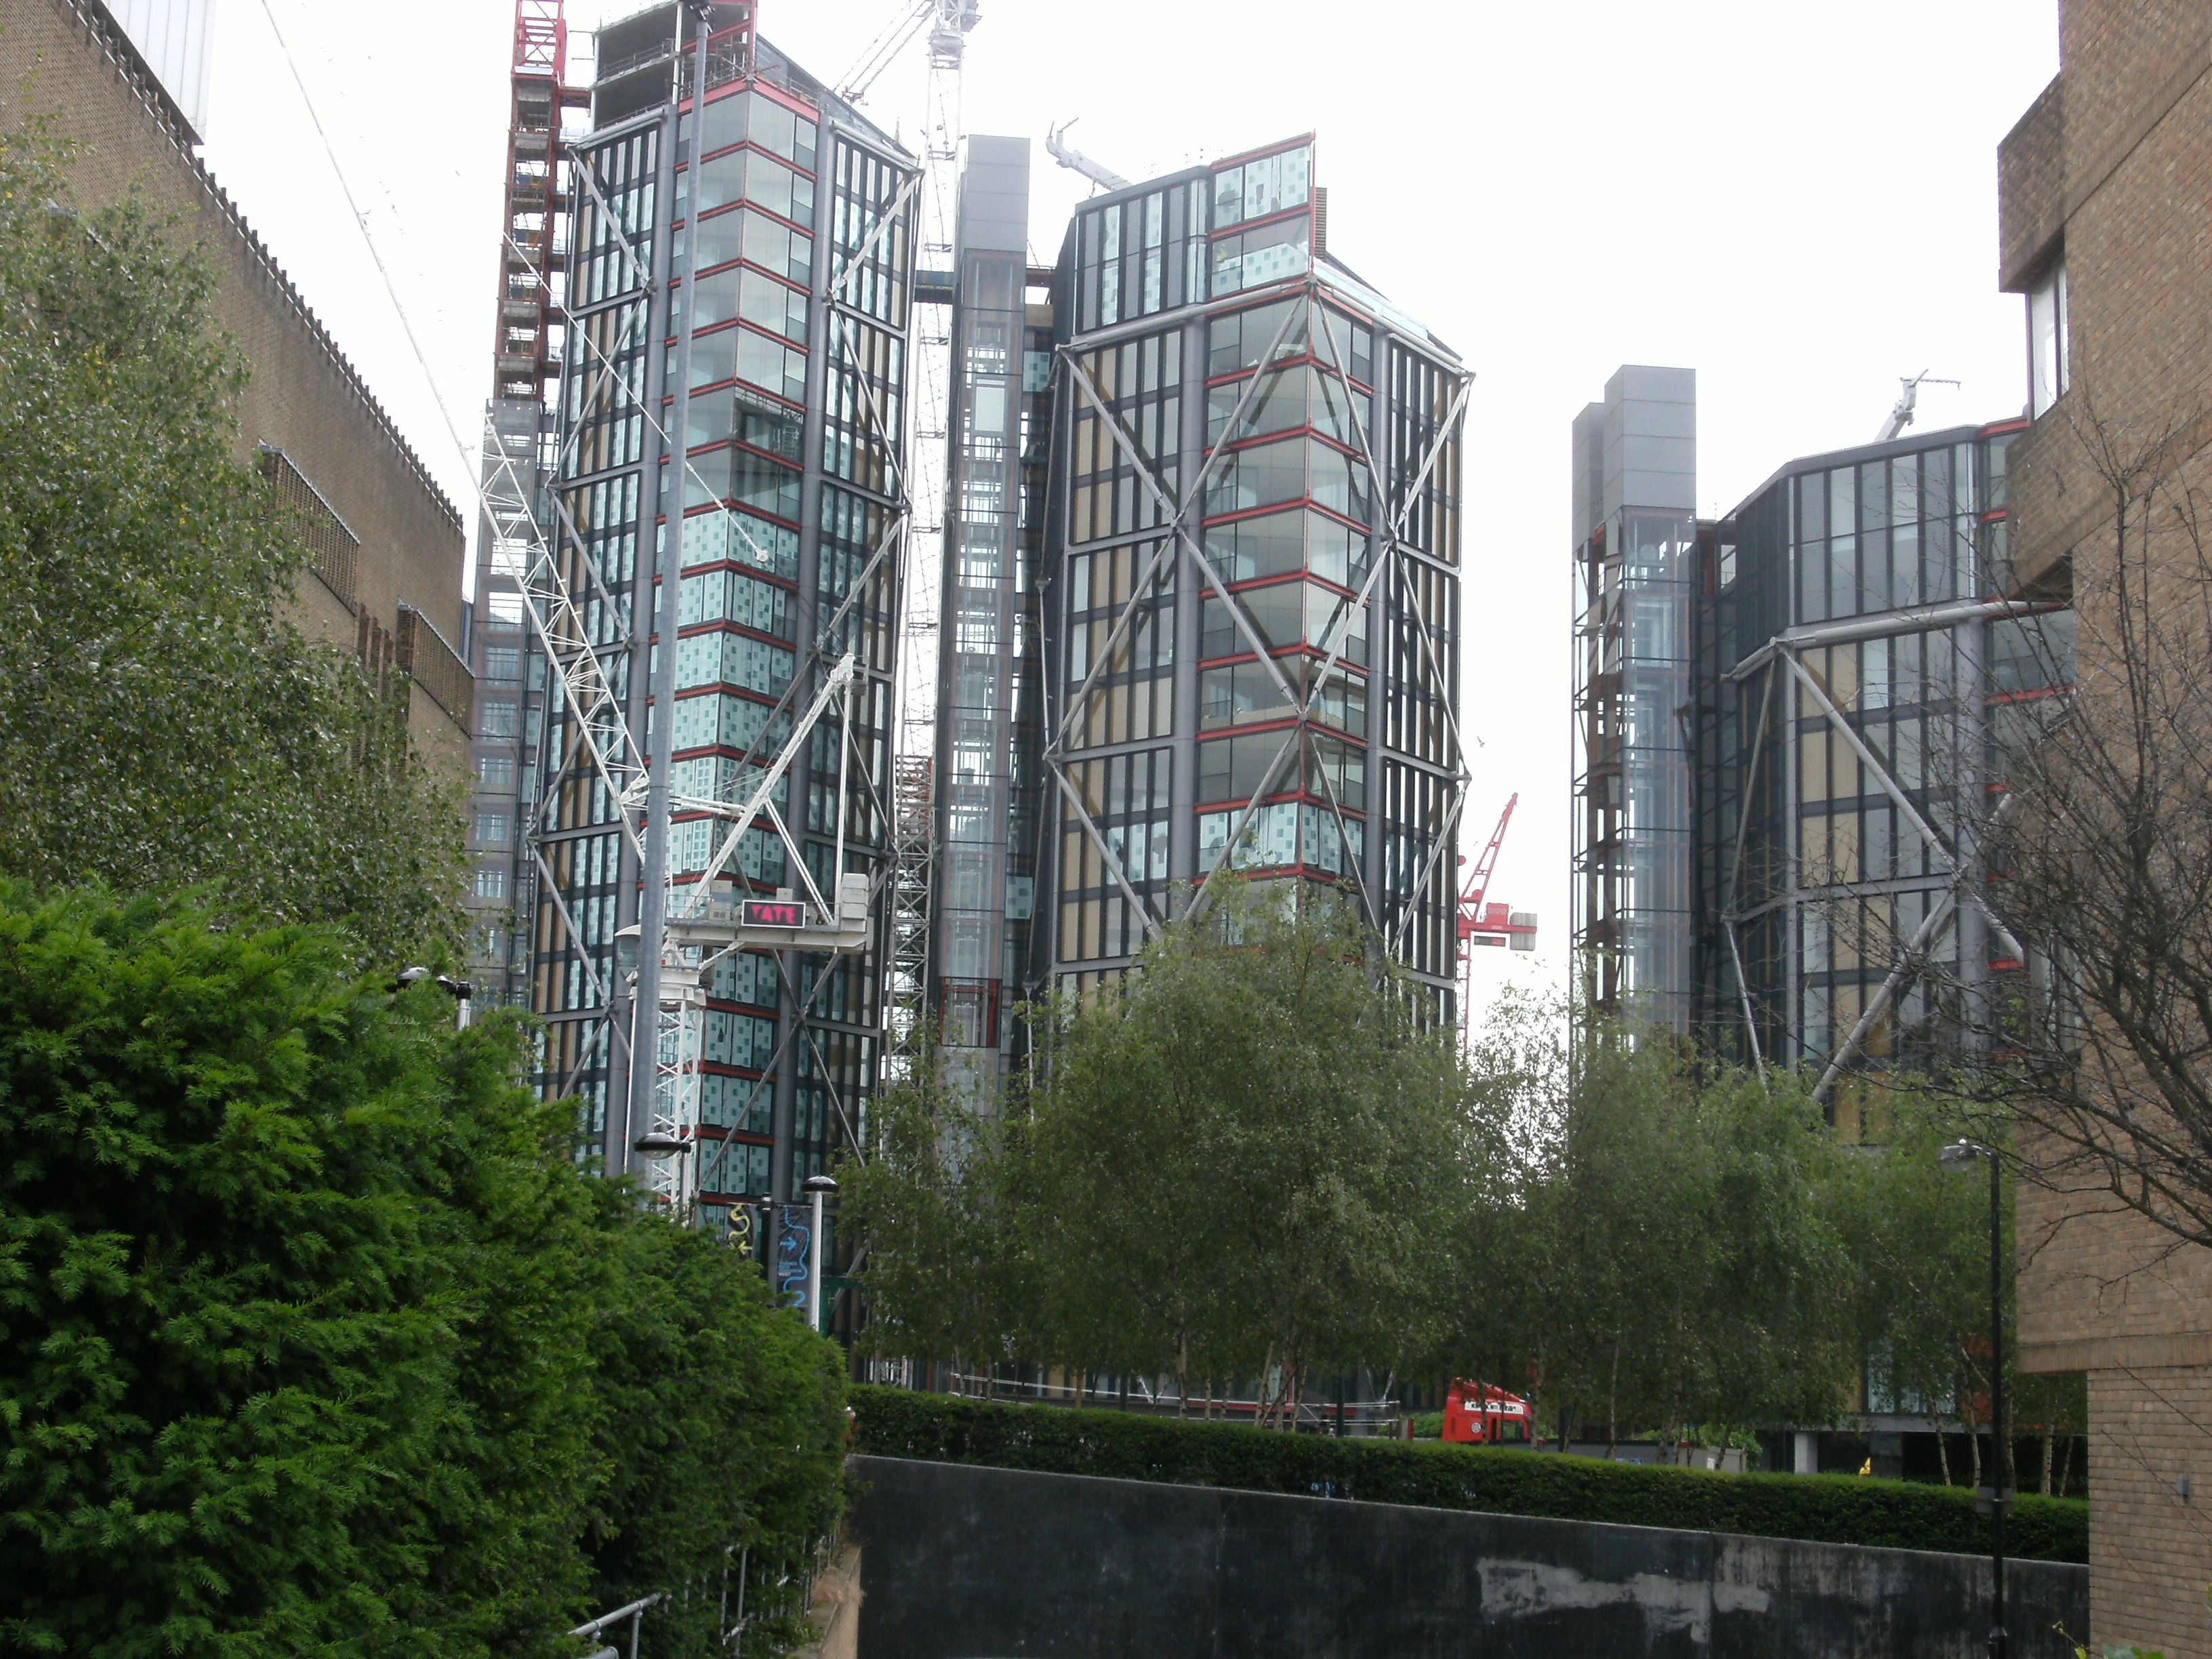 File:Neo Bankside apartment buildings, London.jpg - Wikimedia Commons